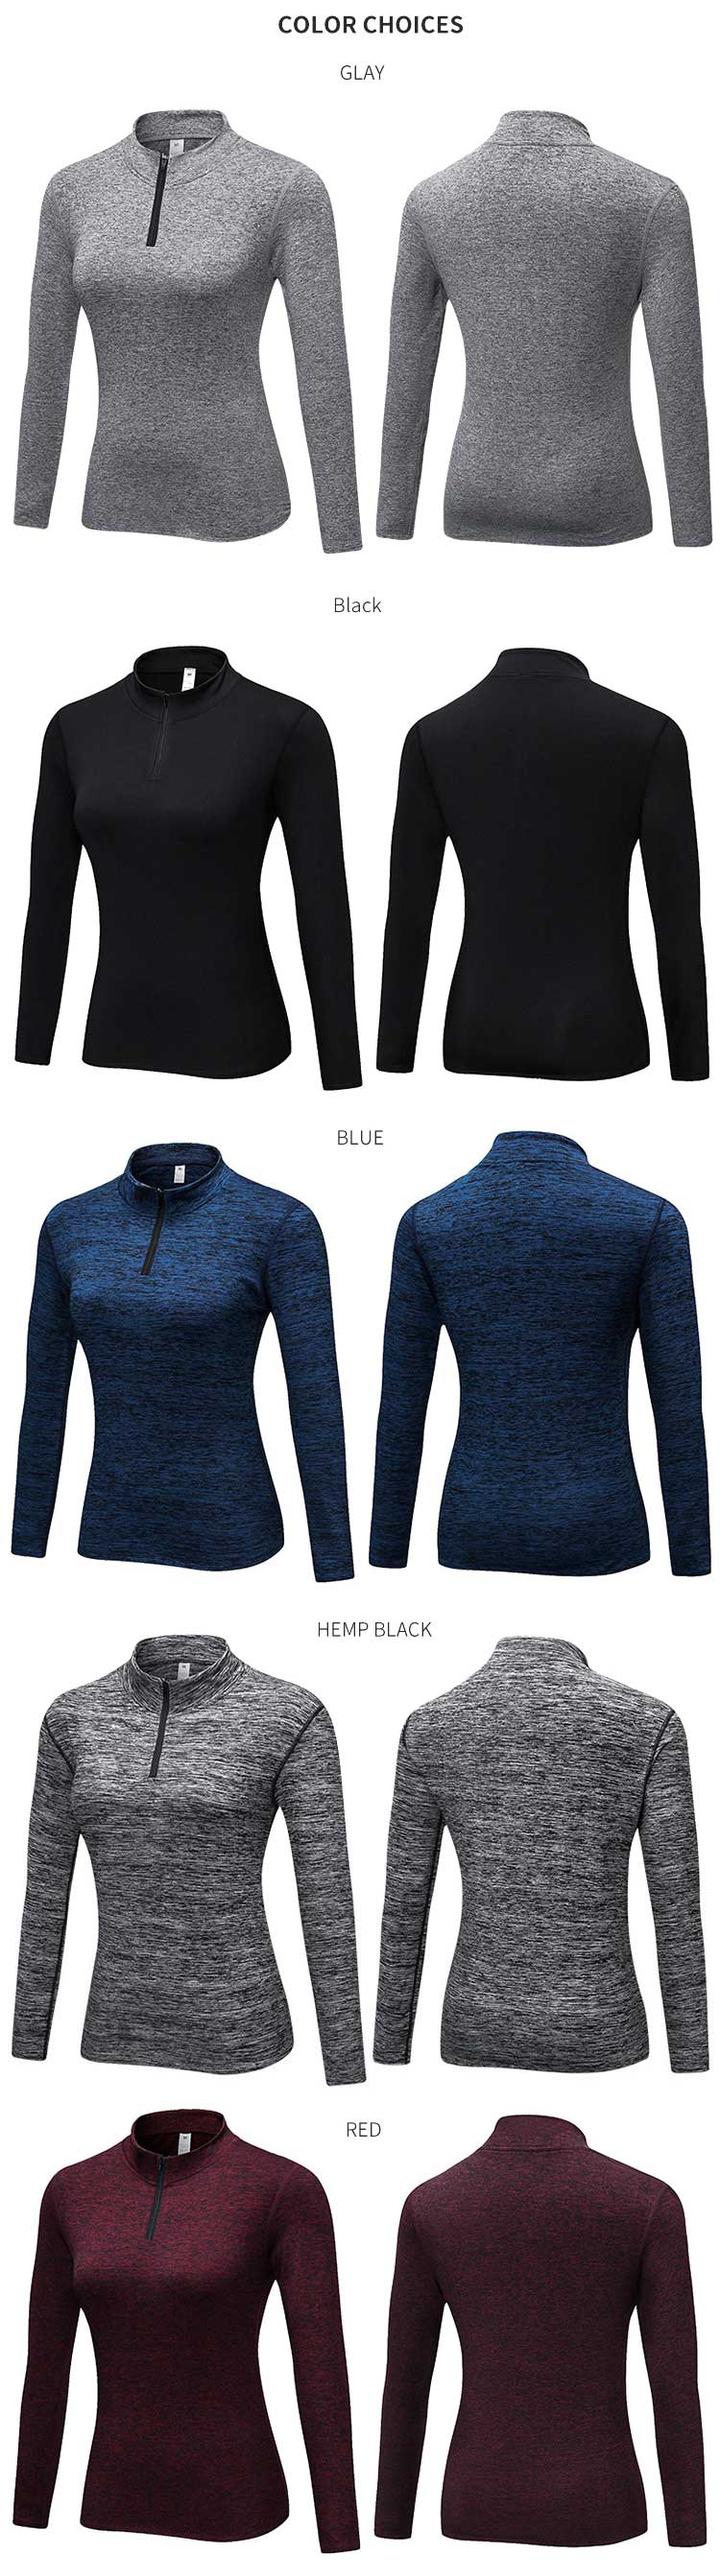 High-neck-workout-shirt-long-sleeve-shirts-color-choices